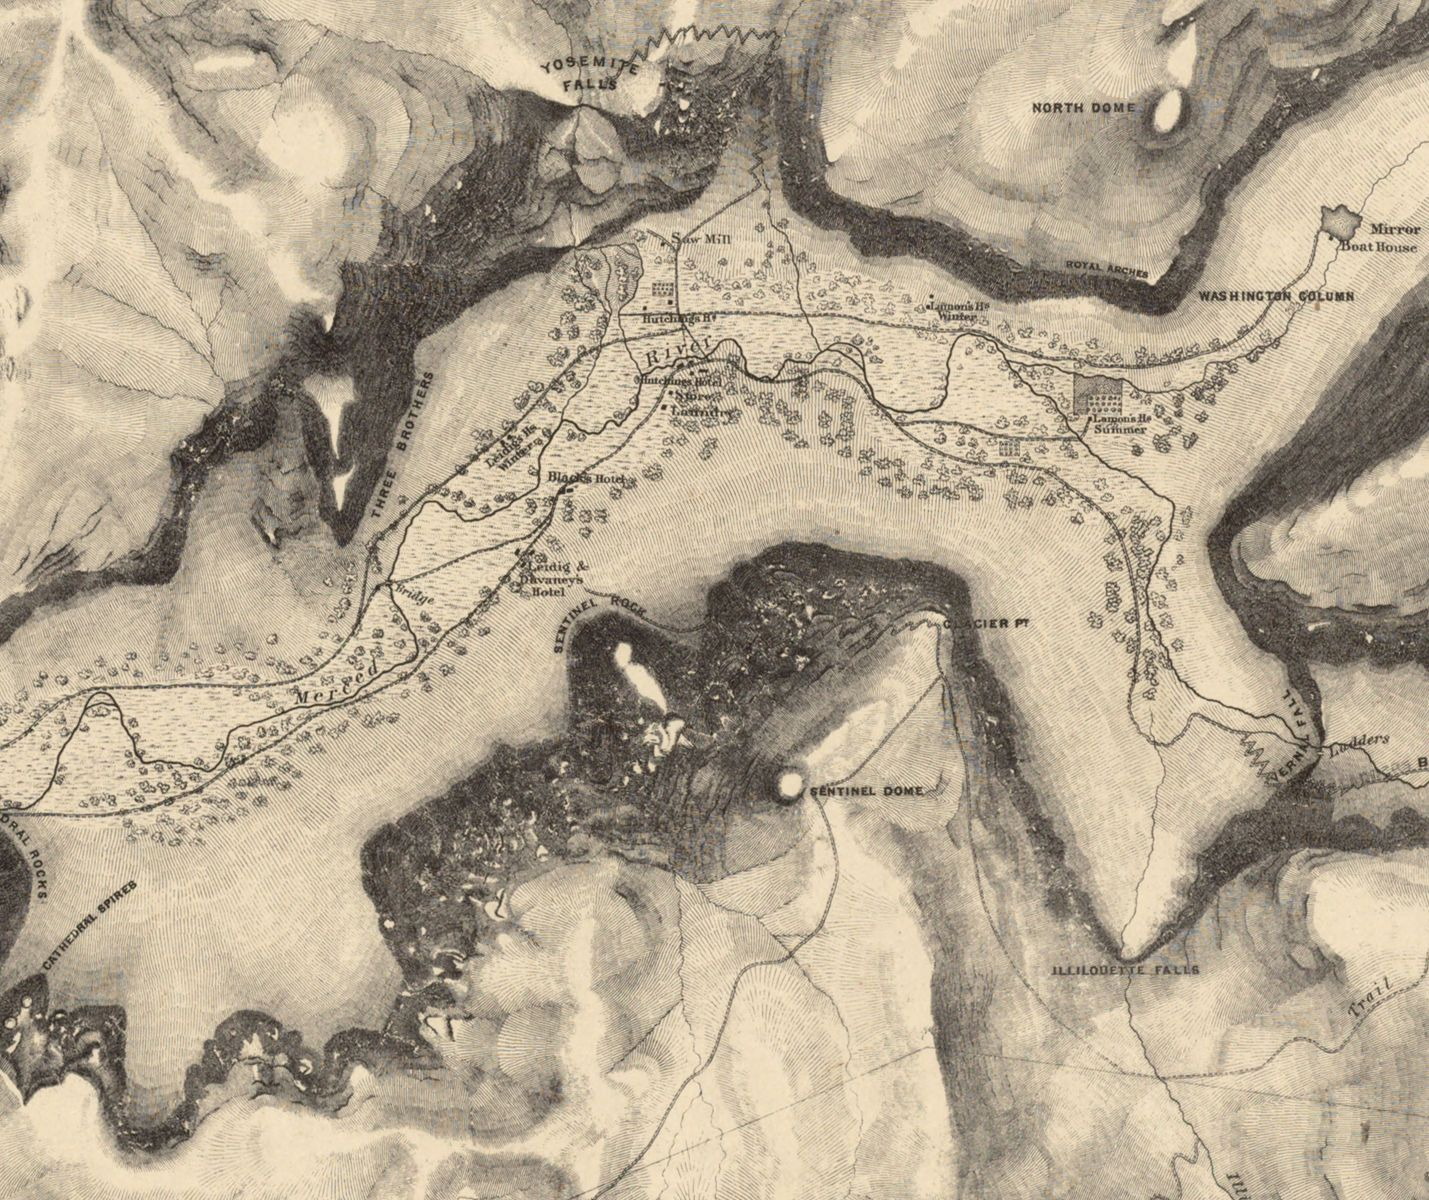 An 1890 map of Yosemite Valley